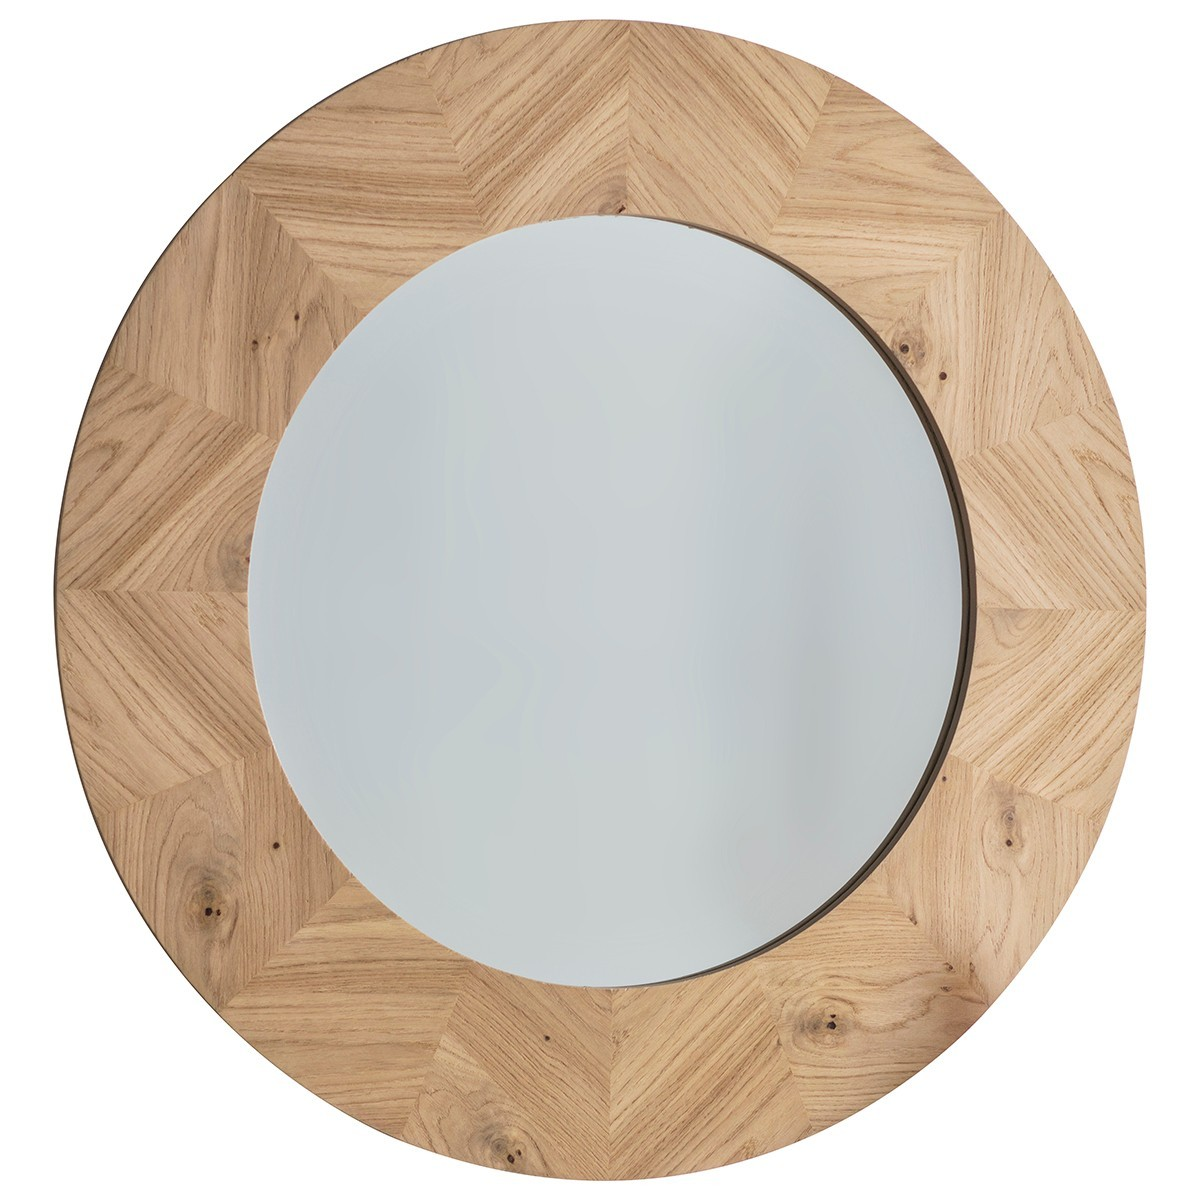 Maja Oak Timber Frame Round Wall Mirror, 90cm